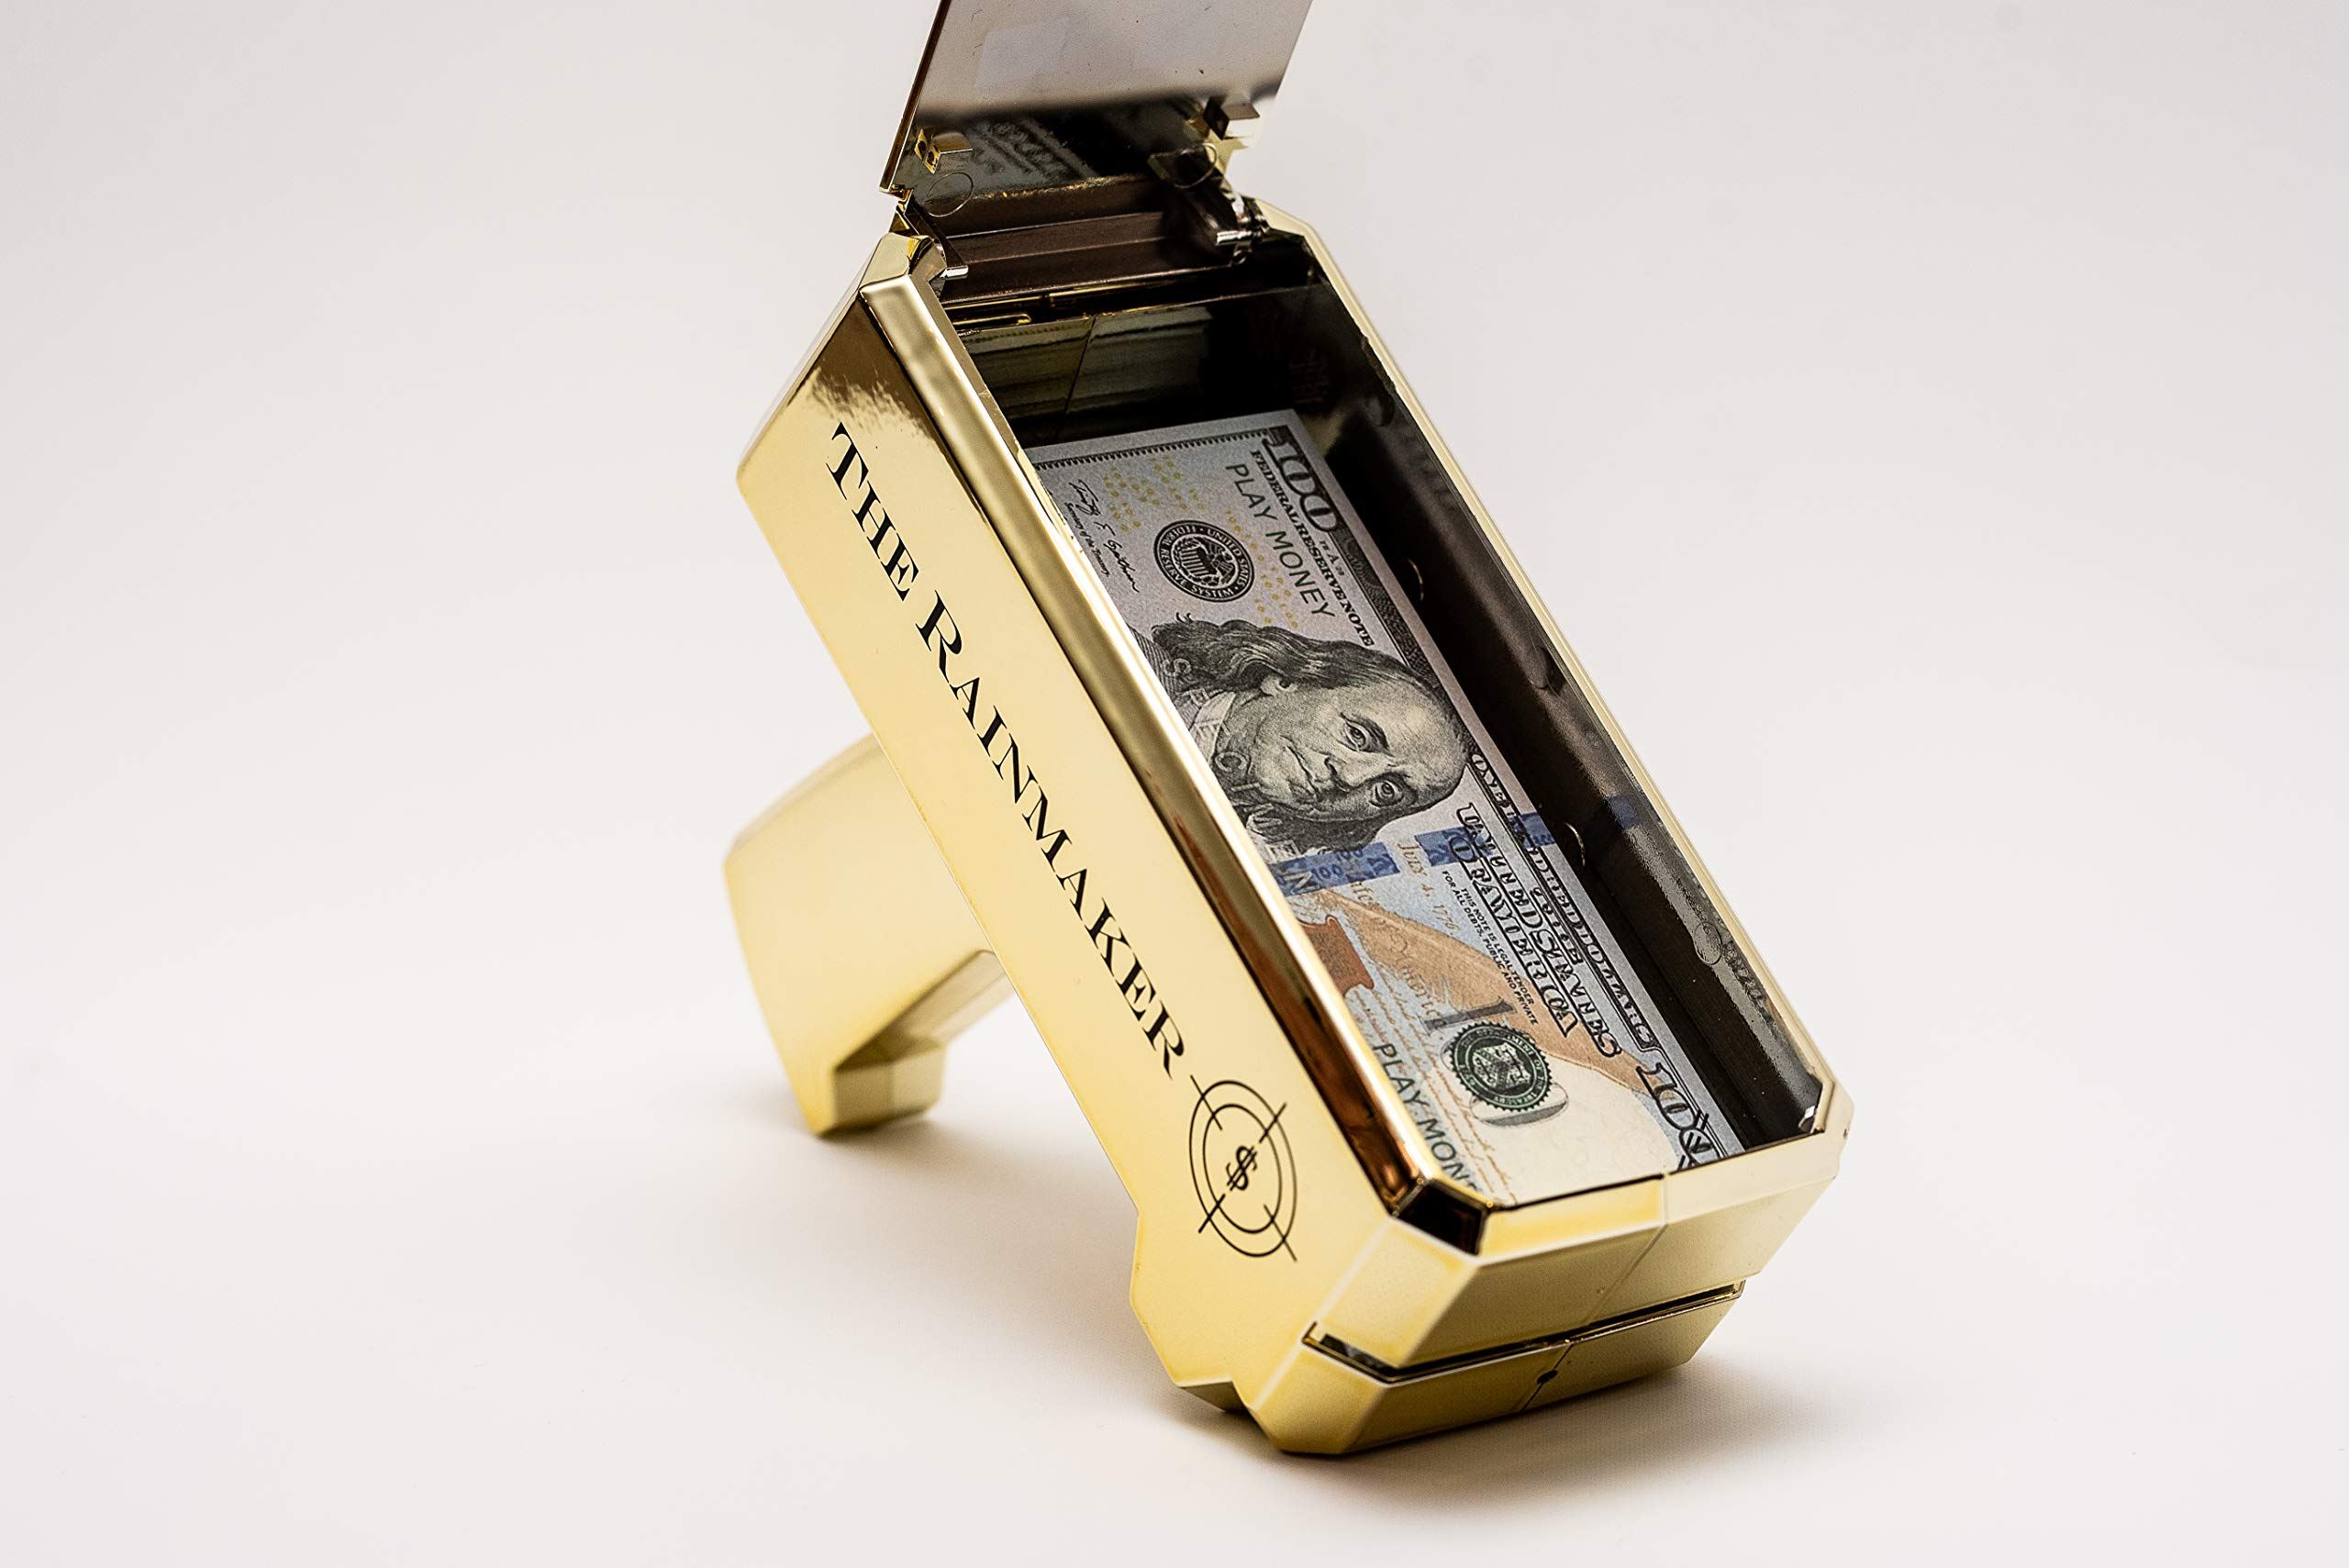 All Out Solutions The Rainmaker Money Gun | $10,000 Play Money | Money Looks Real! | Metallic Gold | Impress Your Friends with This Fun Party Toy | Shoot Cash and Make It Rain by All Out Solutions (Image #6)